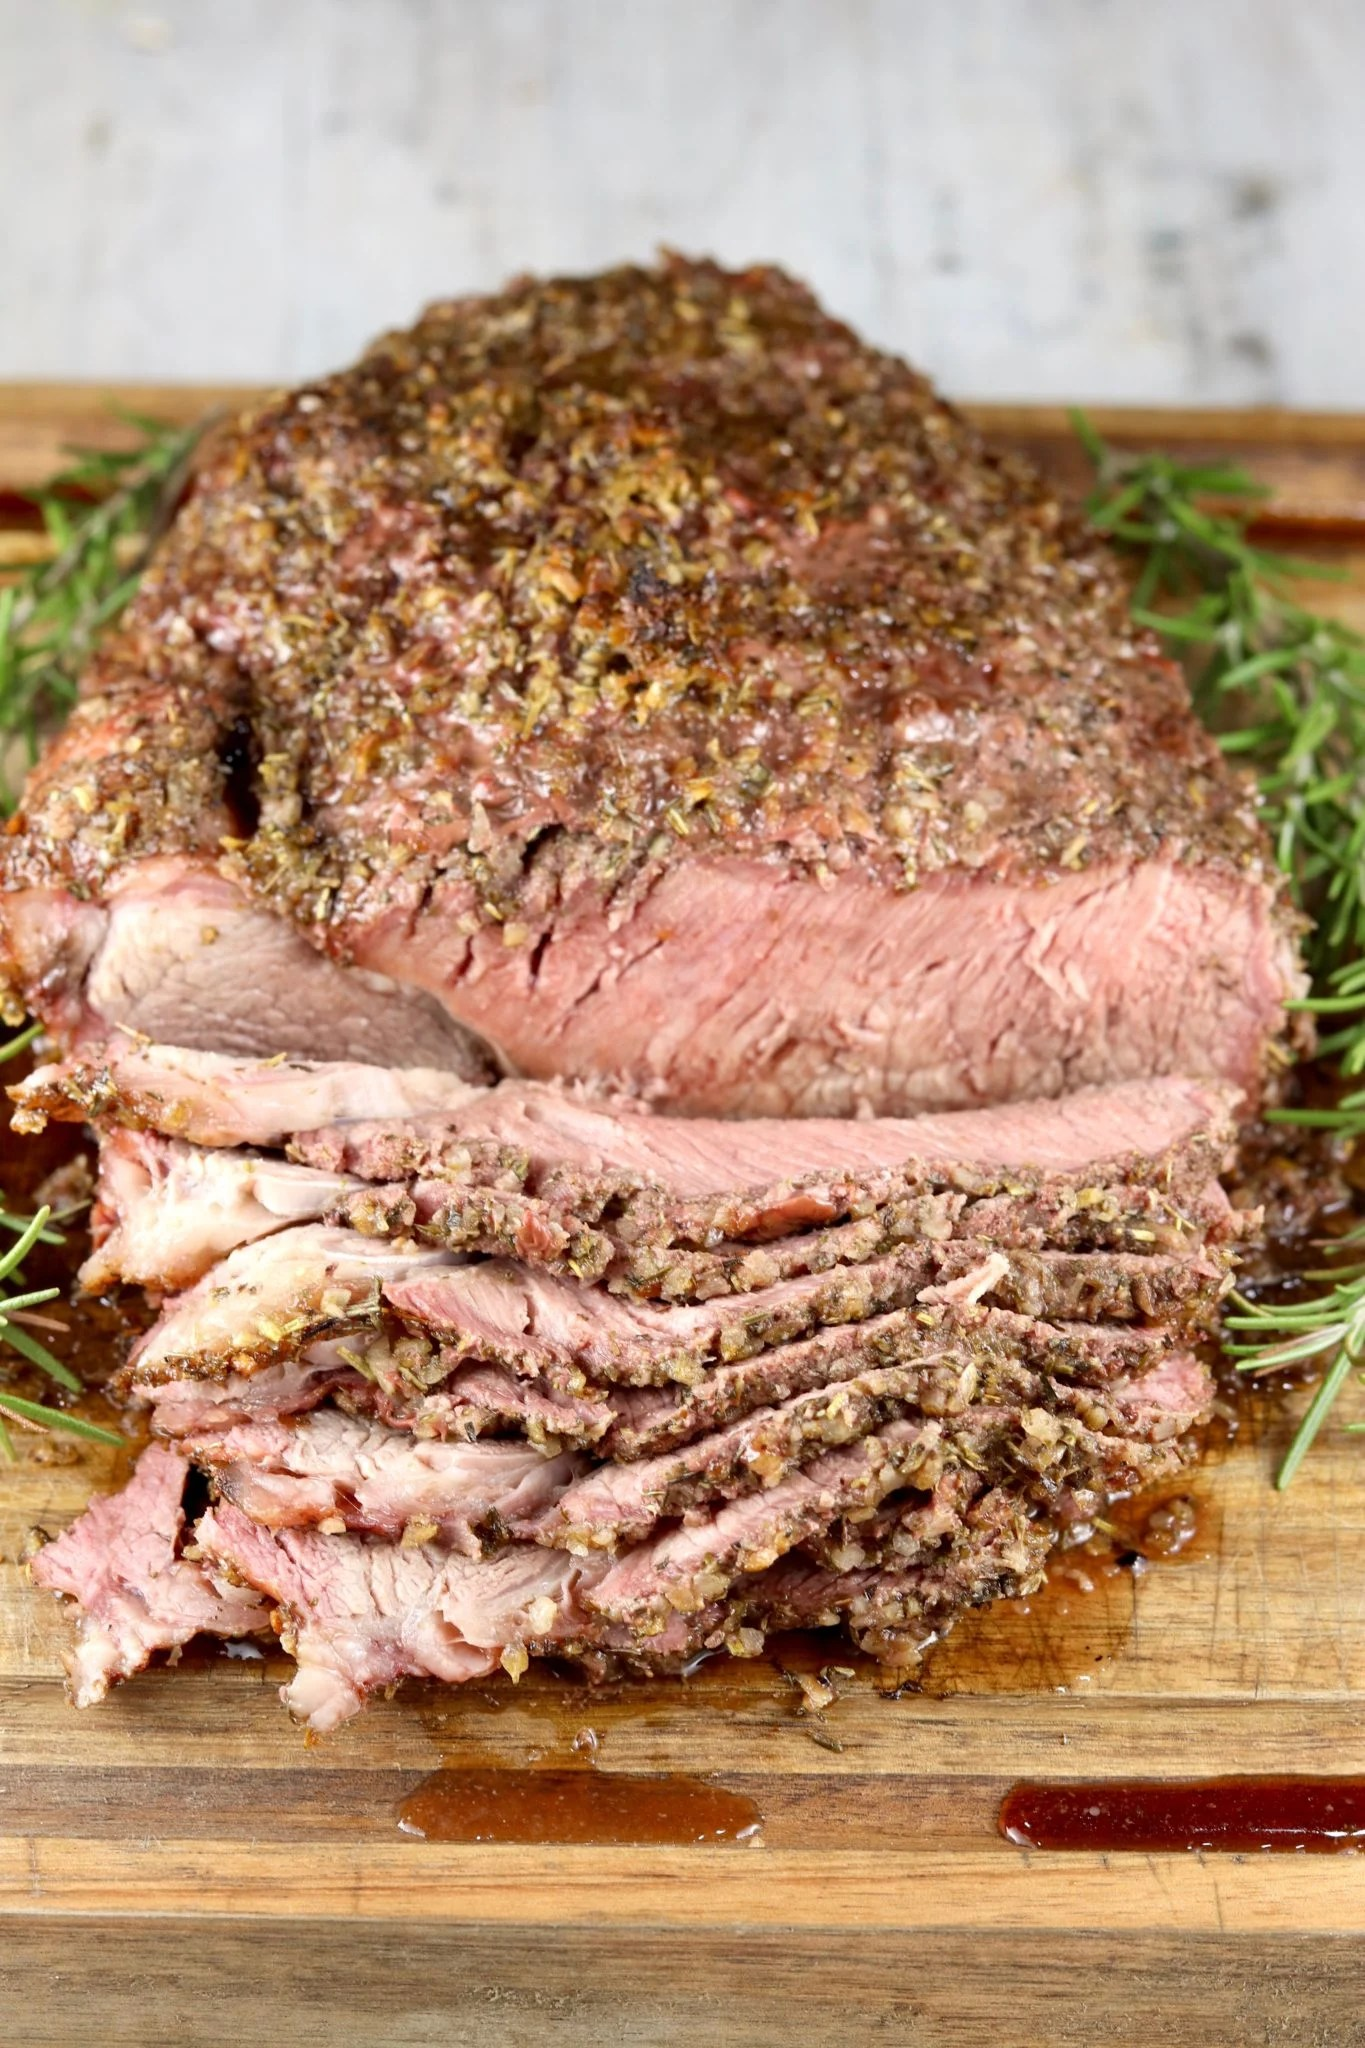 Roast Beef with herb crust, thinly sliced